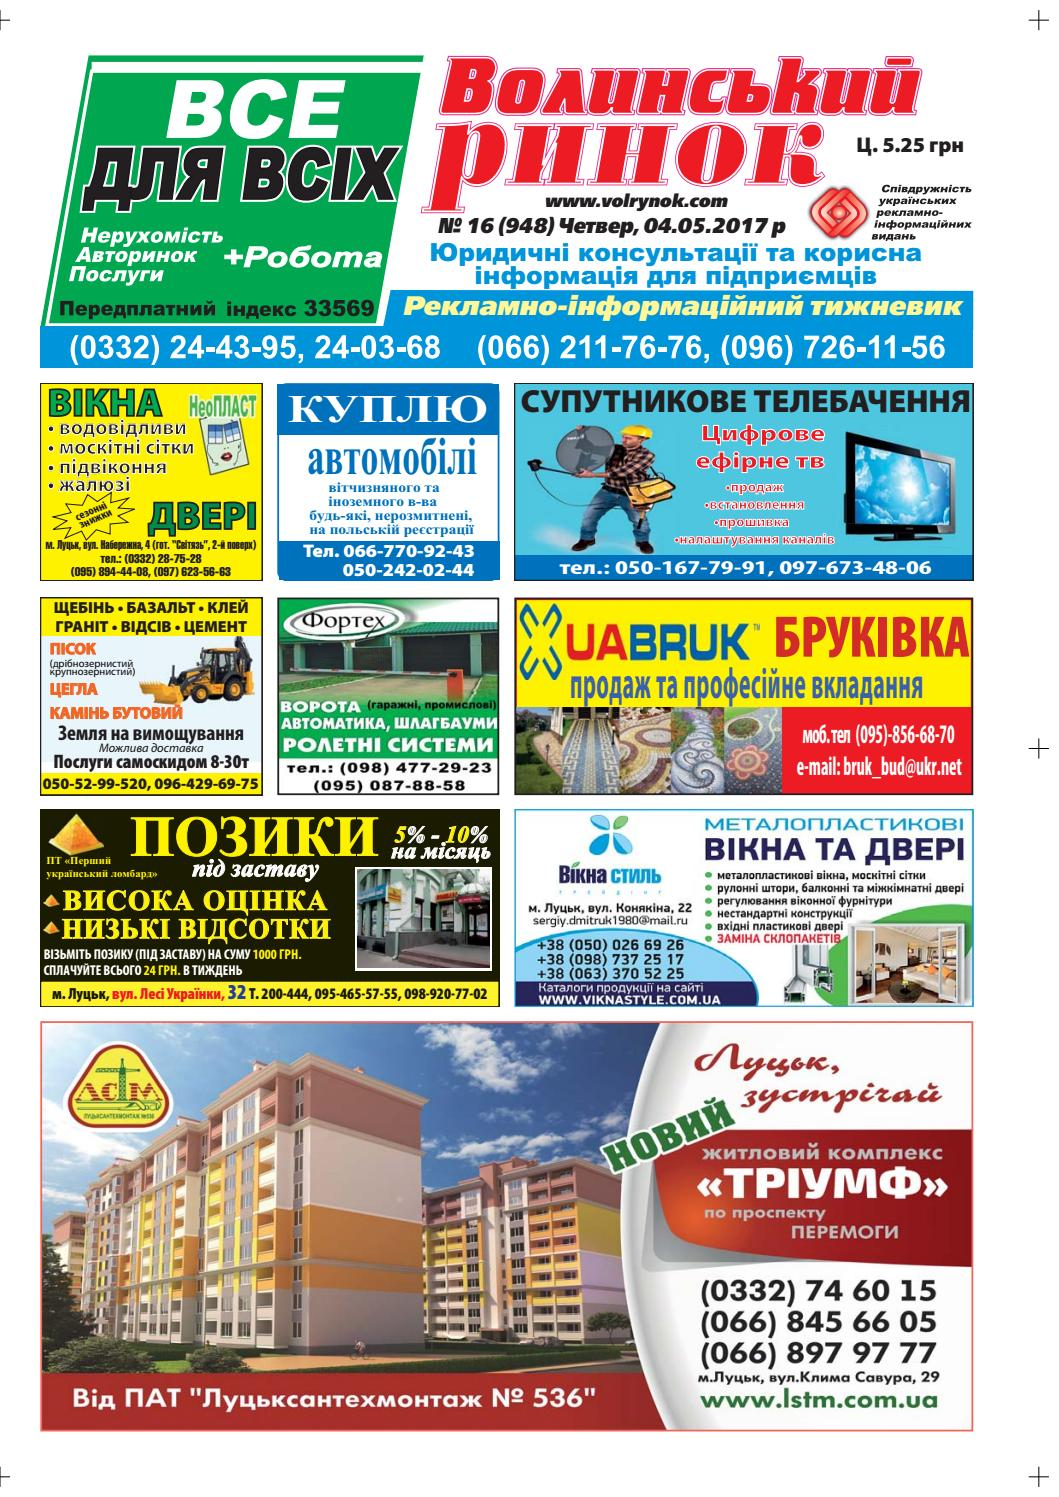 Газета №16 04. 05. 2017 by volrynok - issuu a45cbc7c50f08